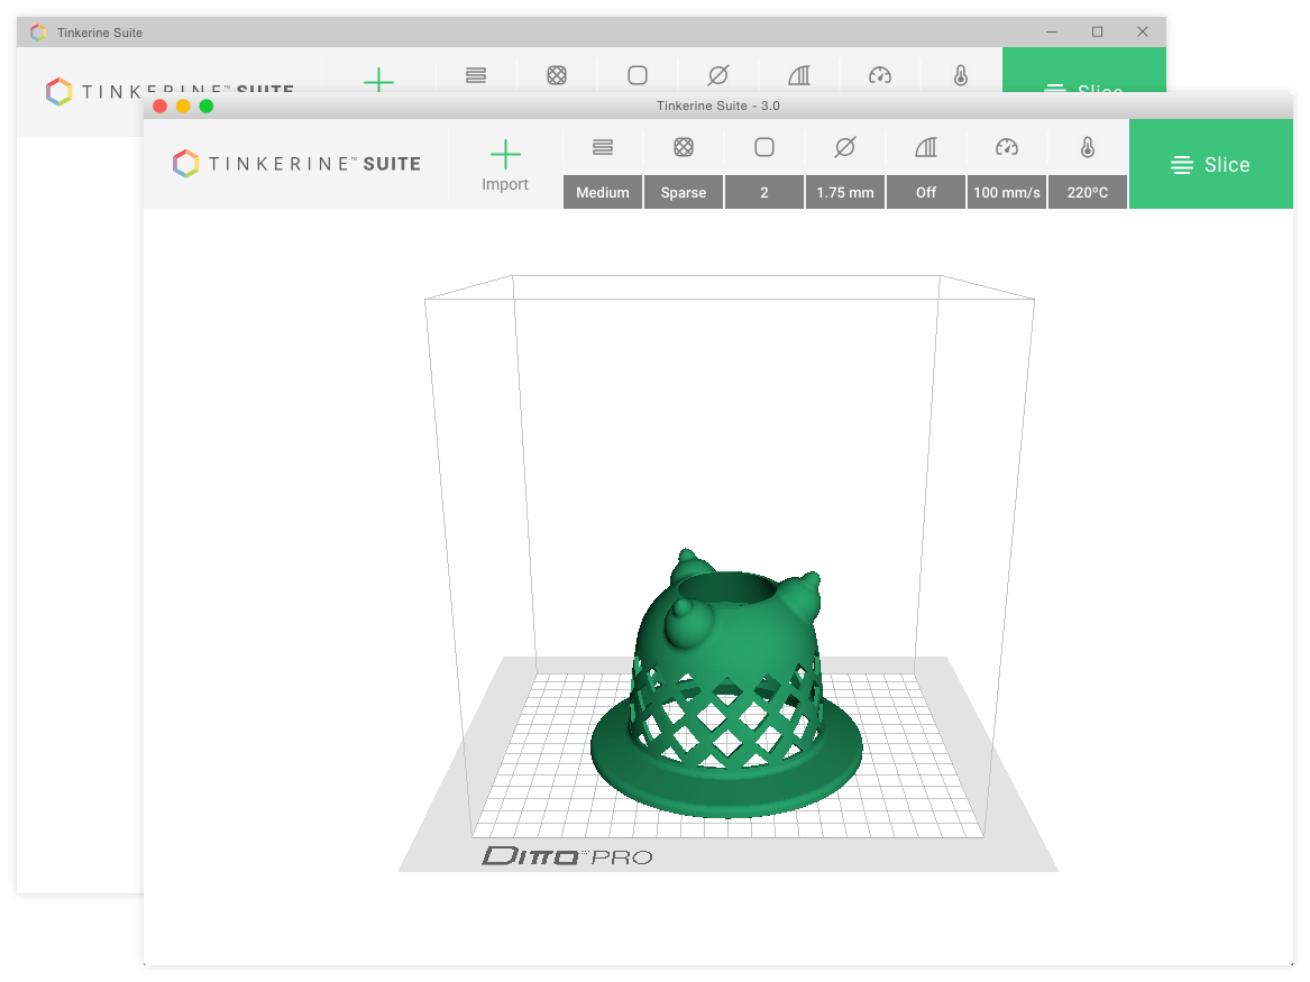 Tinkerine Suite Mac and Windows interface screenshot with 3d model.